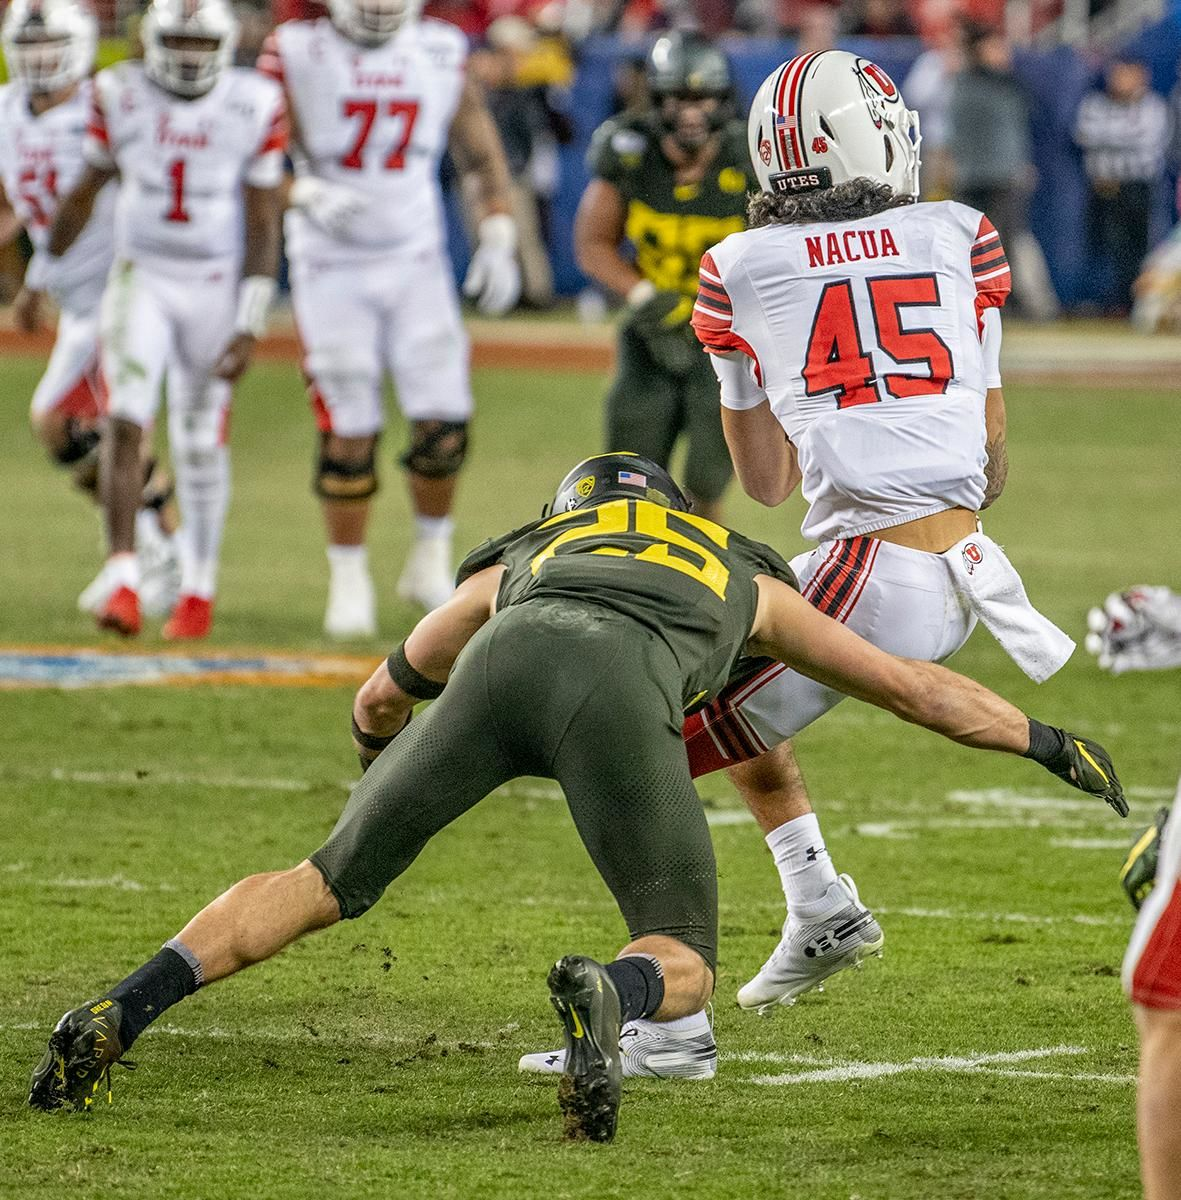 Oregon's safety Brady Breeze, #25, lays a big hit on Utah's wide receiver Samson Nacuam #45, after a catch. The University of Oregon Ducks defeated the Utah Utes 37-15 for the Pac 12 Championship Friday night at Levi's Stadium. Oregon's running back CJ Verdell, #7, rushed for 203 all-purpose yard along with three touchdowns for the night. Verdell was named the games M-V-P for his performace. Oregon's safey Brady Breeze, #25, contributed 9 tackles and one interception. Oregon's defensive end Kayvon Thibodeaux, #5, sacked Utah's quarterback Tyler Huntly, #1, for a total of three times. Oregon's quarterback Justin Herbert, #10, passed for 193 yards with one touchdown. The Oregon Ducks will represent the Pac 12 for the upcoming Rose Bowl game in the new year. Photo by Jeffrey Price